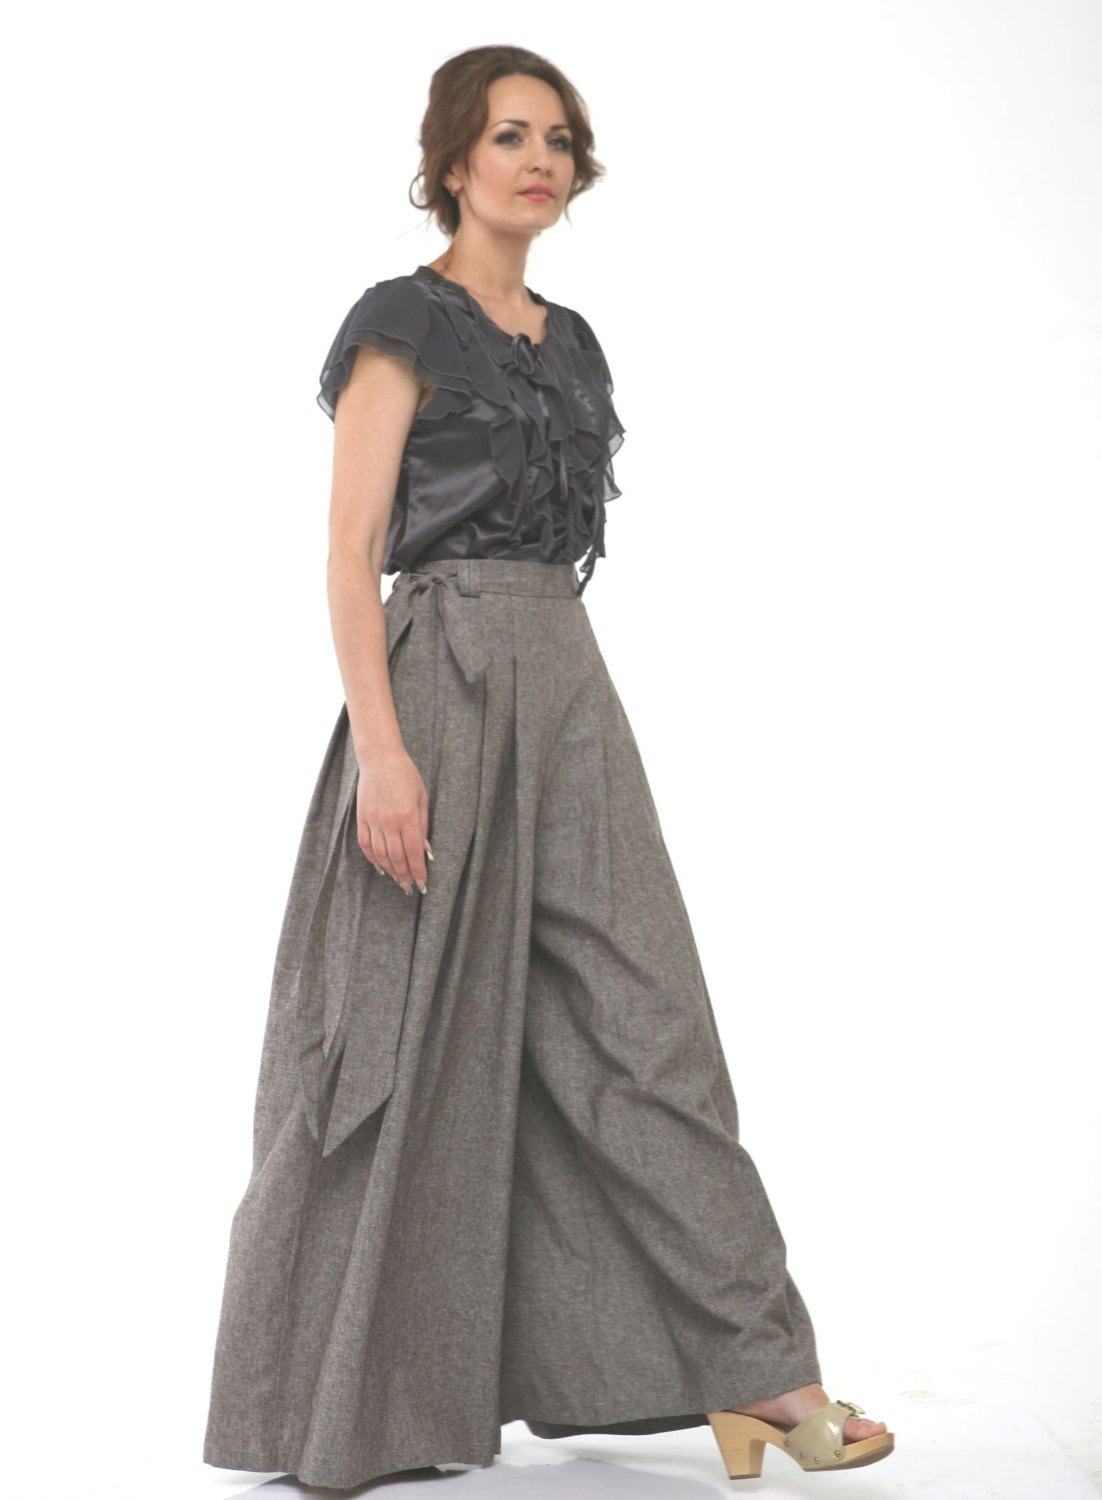 Wide Leg Linen Pants.Comfortable Pants Skirt with